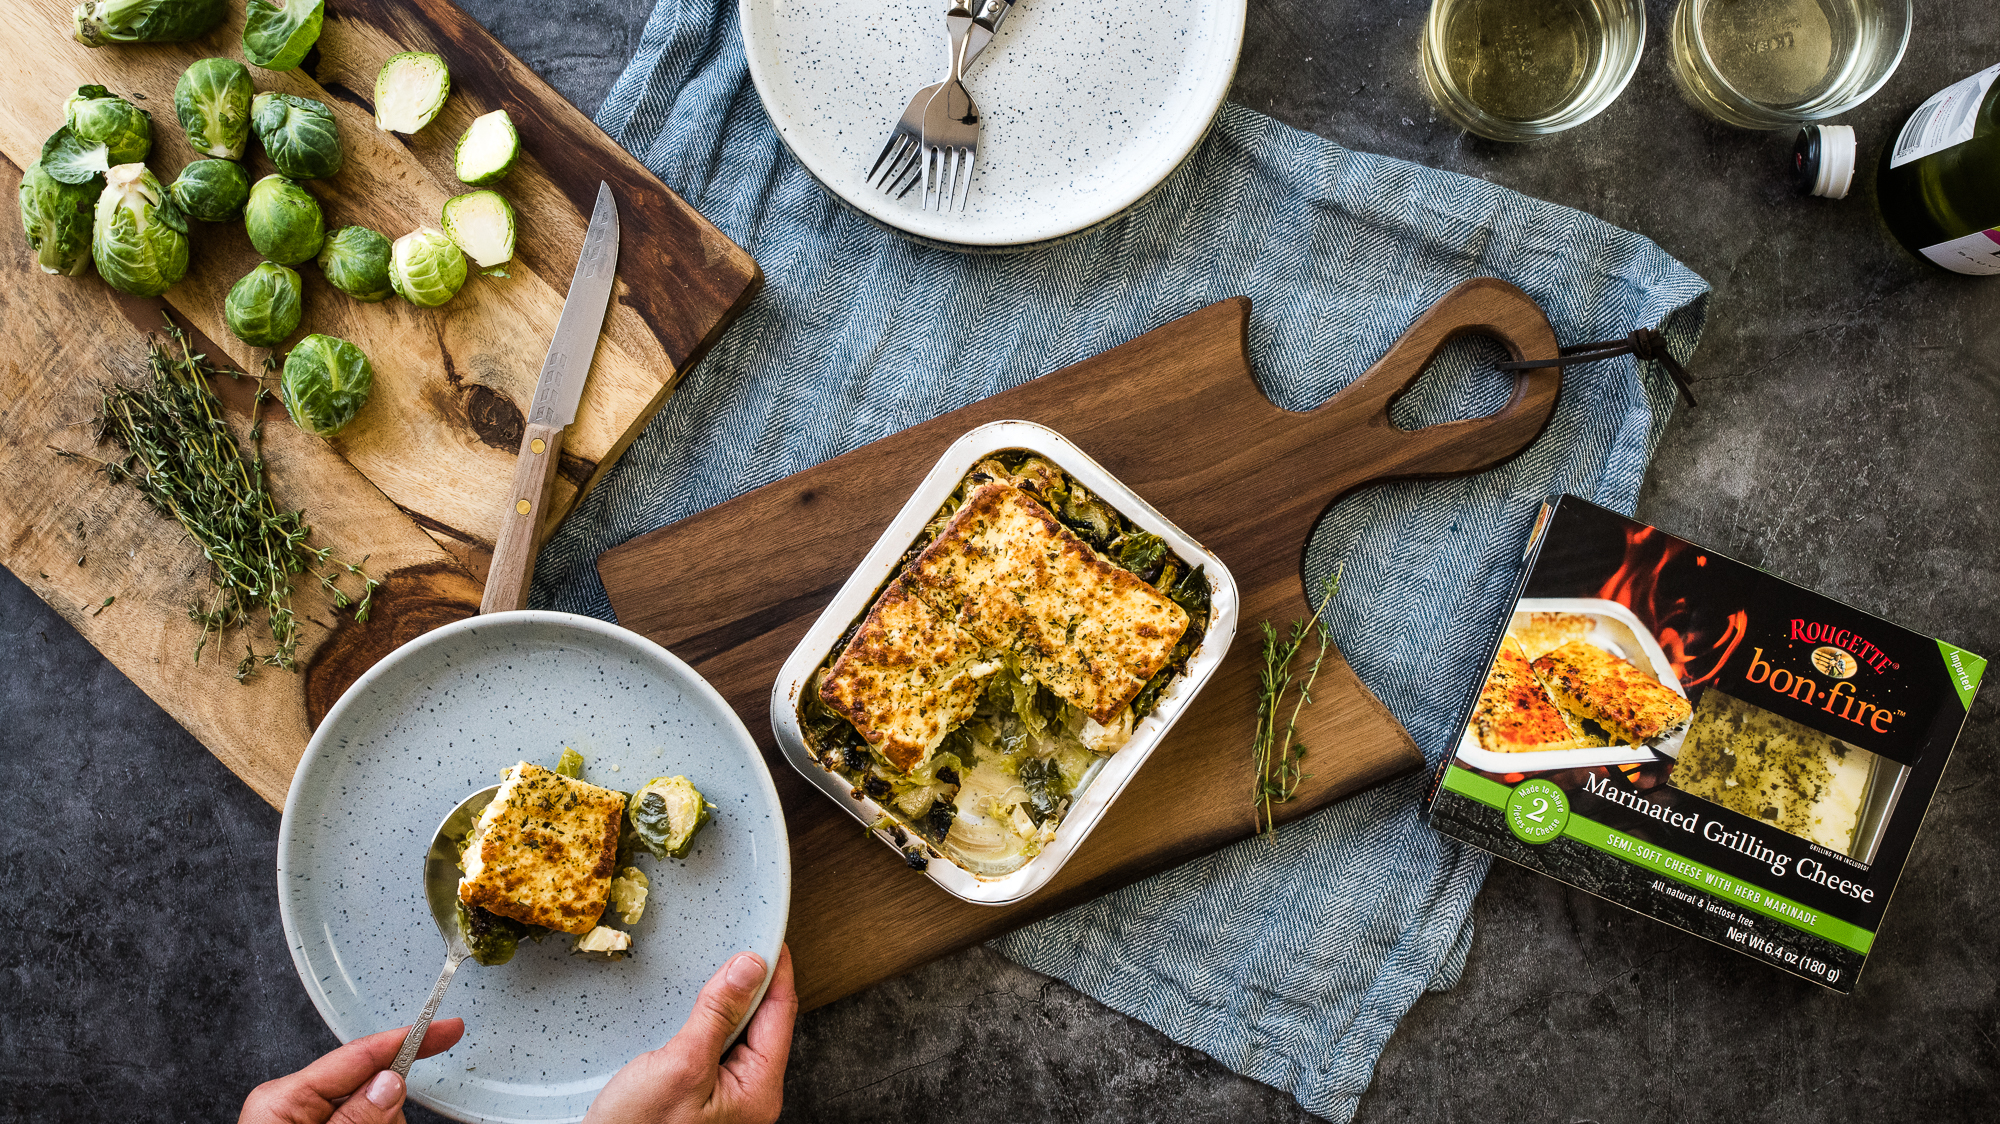 Marinated Grilling Cheese & Brussels Sprout Gratin -